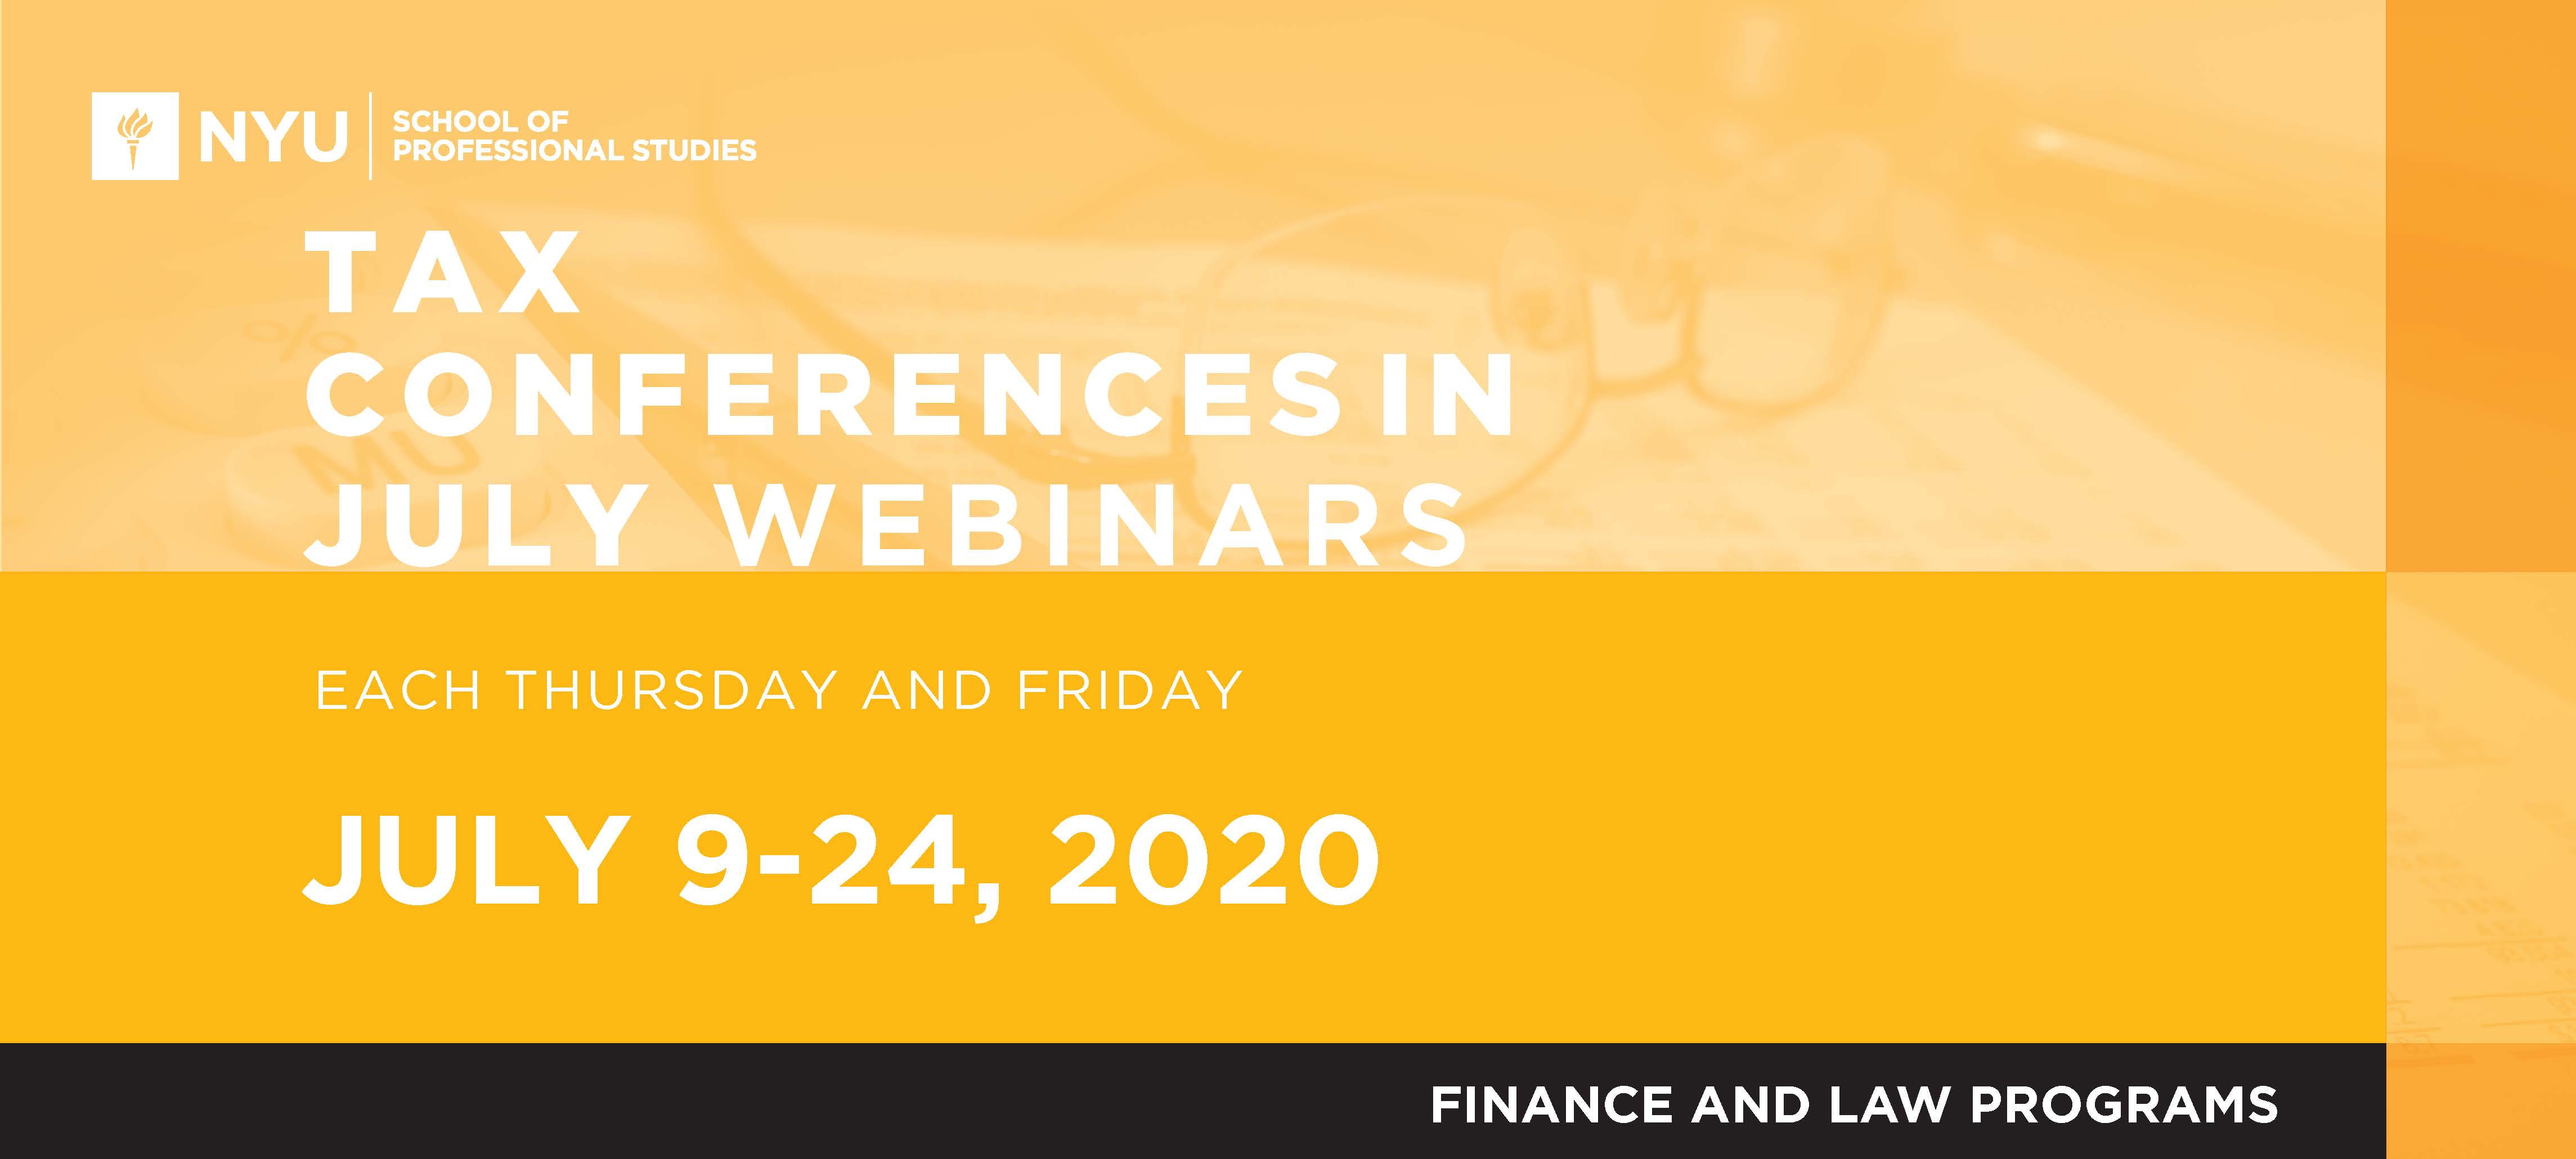 2020 Tax Conferences in July